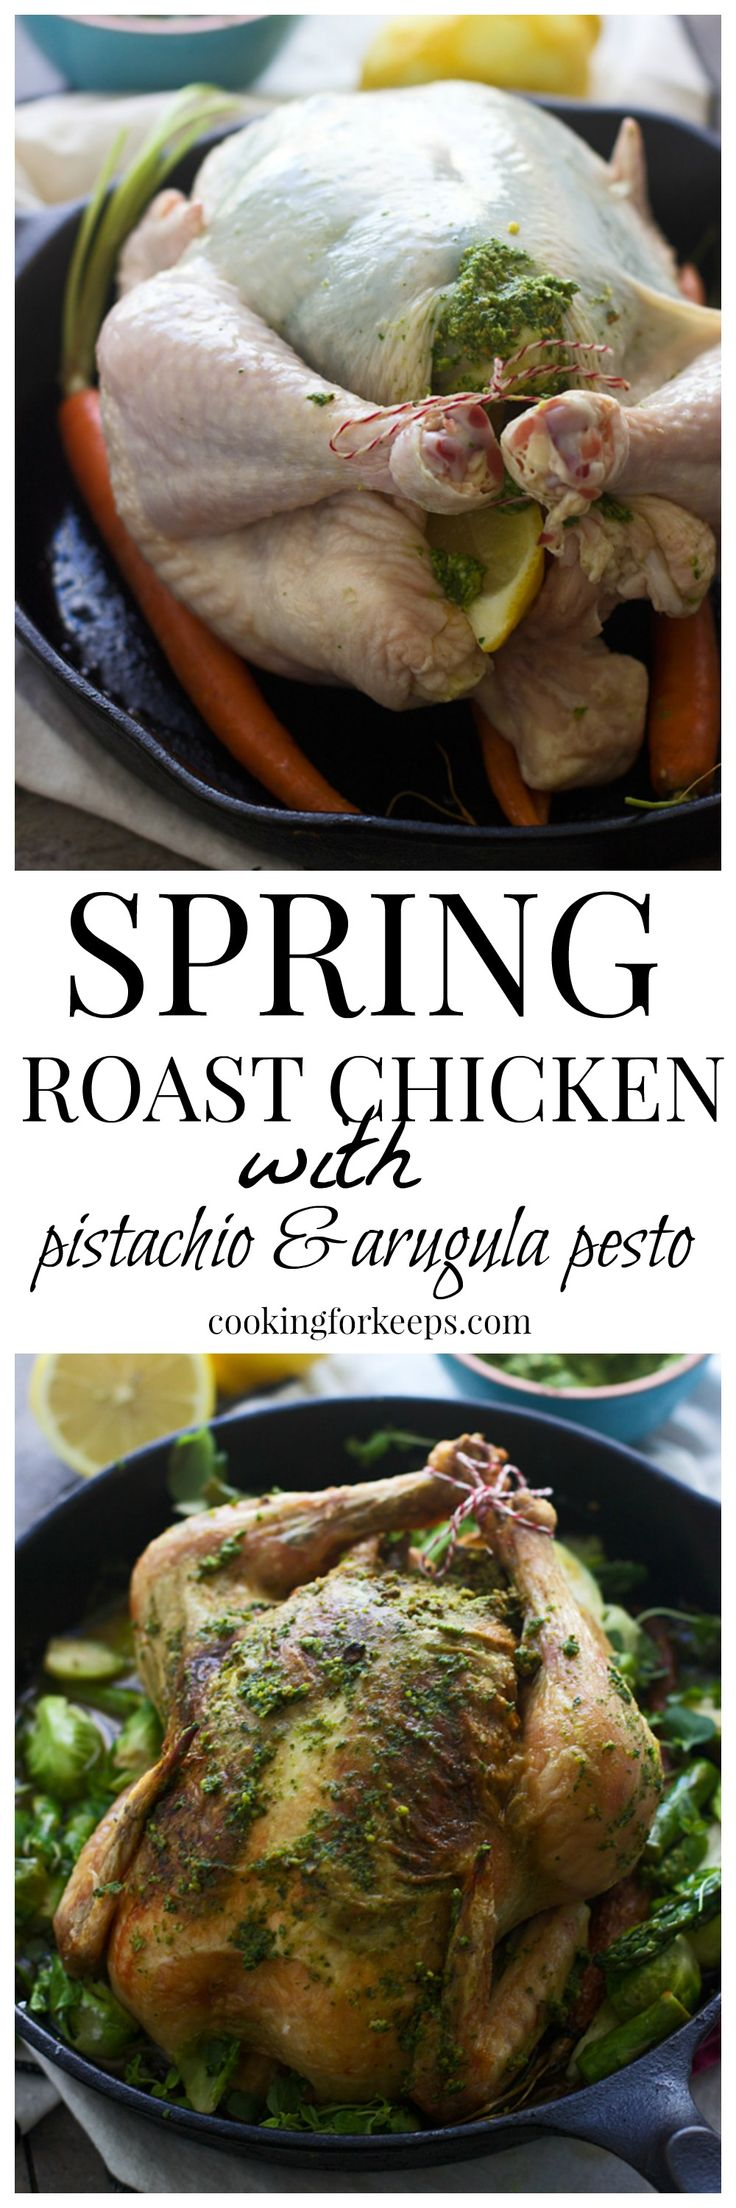 Roast Chicken with Pistachio and Arugula Pesto (And the best roast chicken I've ever had!)